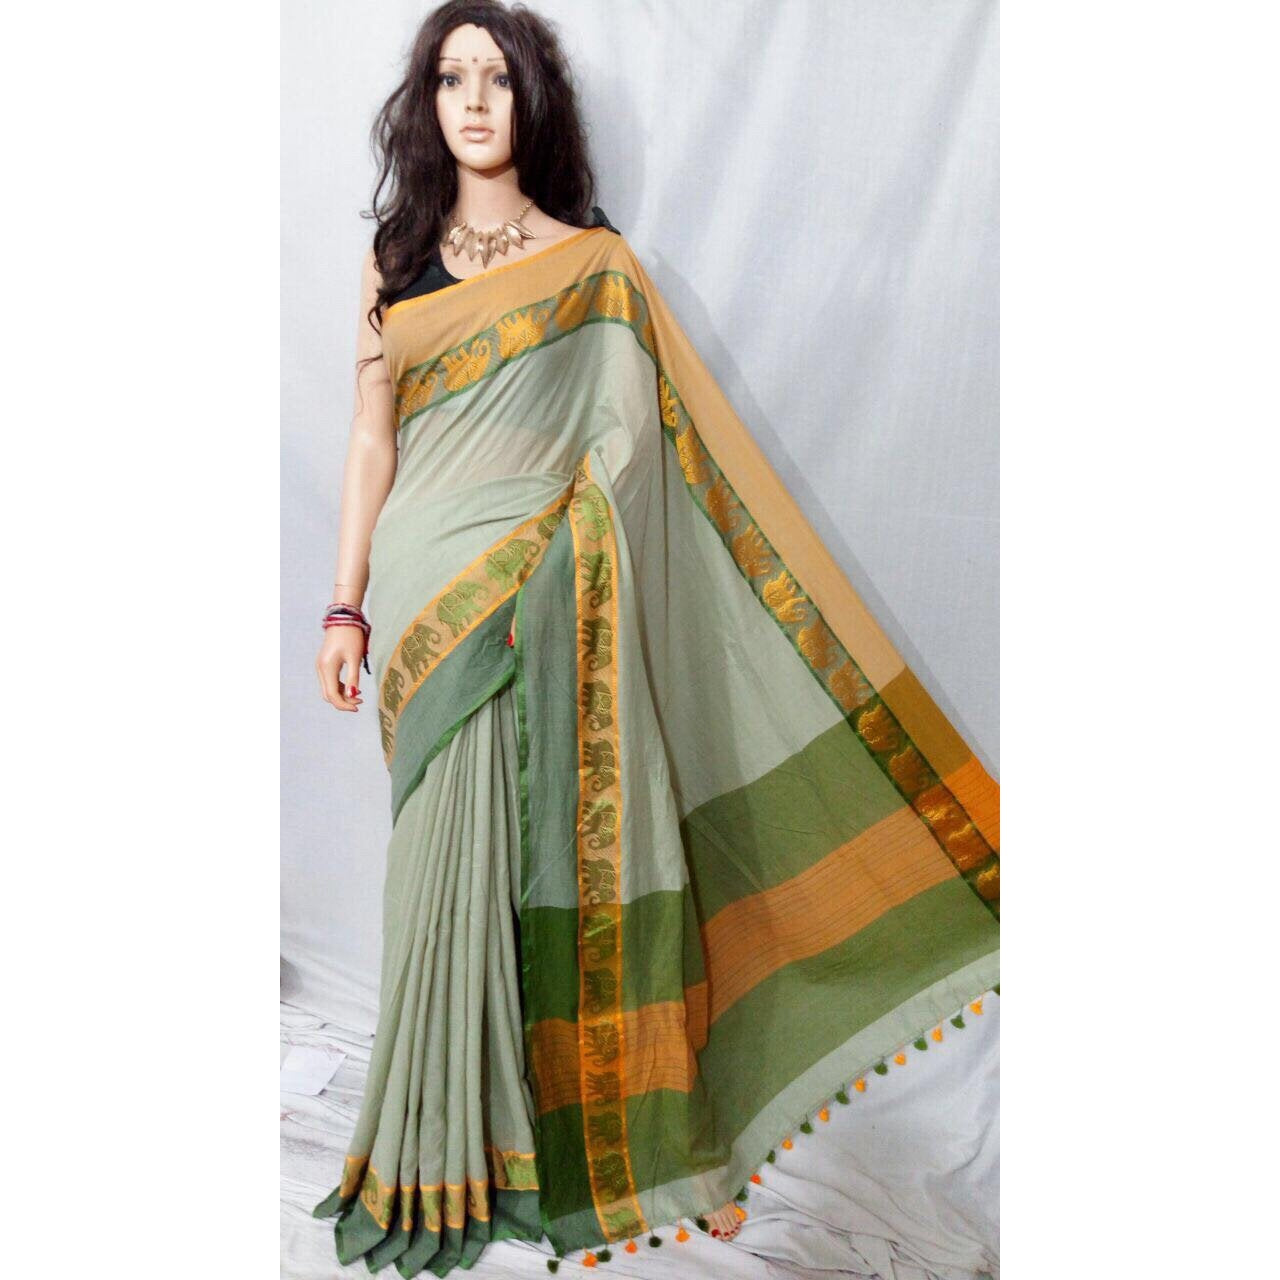 Soft khadi cotton saree dress - Chiro's By Jigyasa